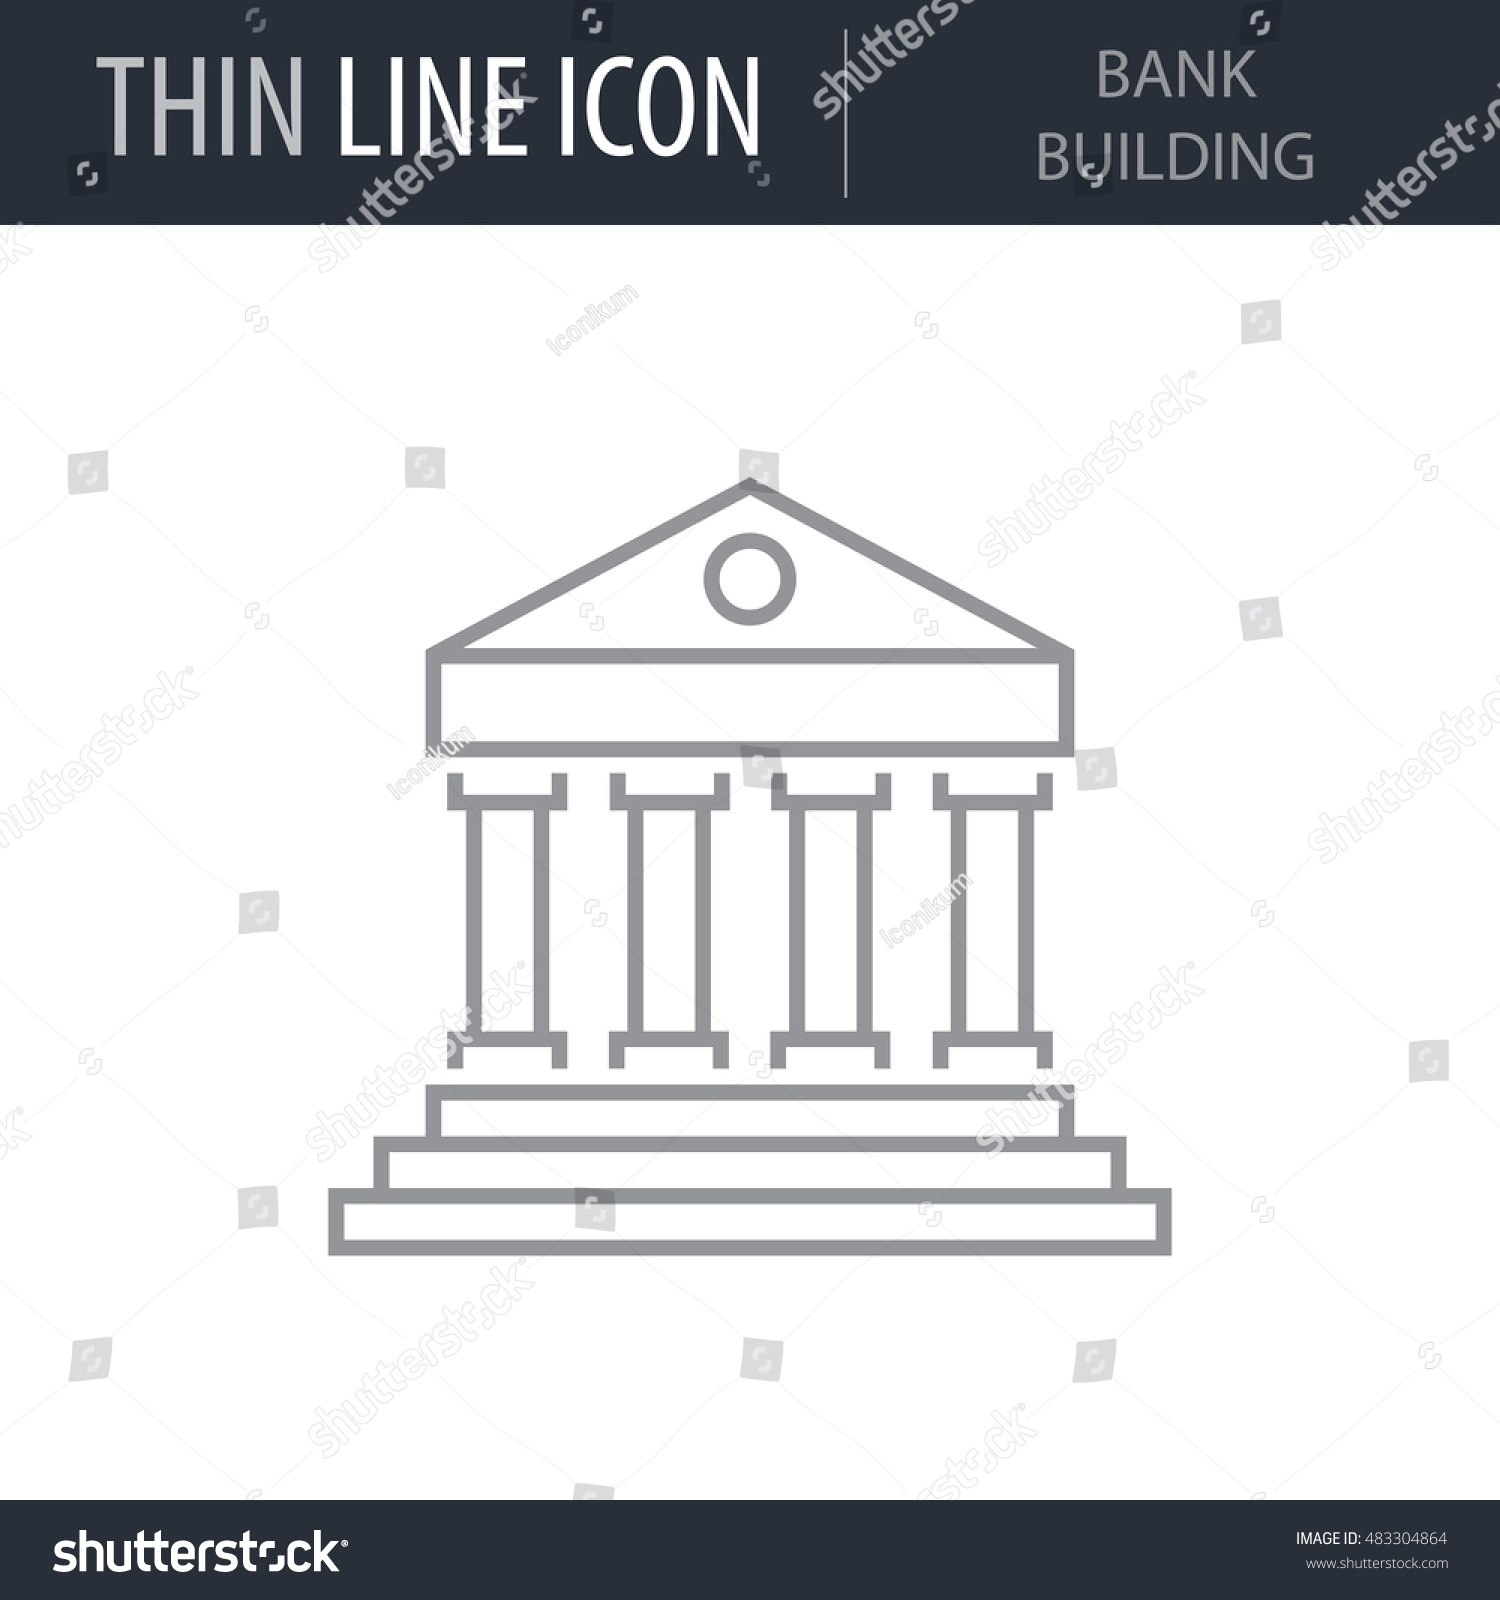 Symbol bank building thin line icon stock vector 483304864 symbol of bank building thin line icon of banking and finance stroke pictogram graphic for biocorpaavc Gallery